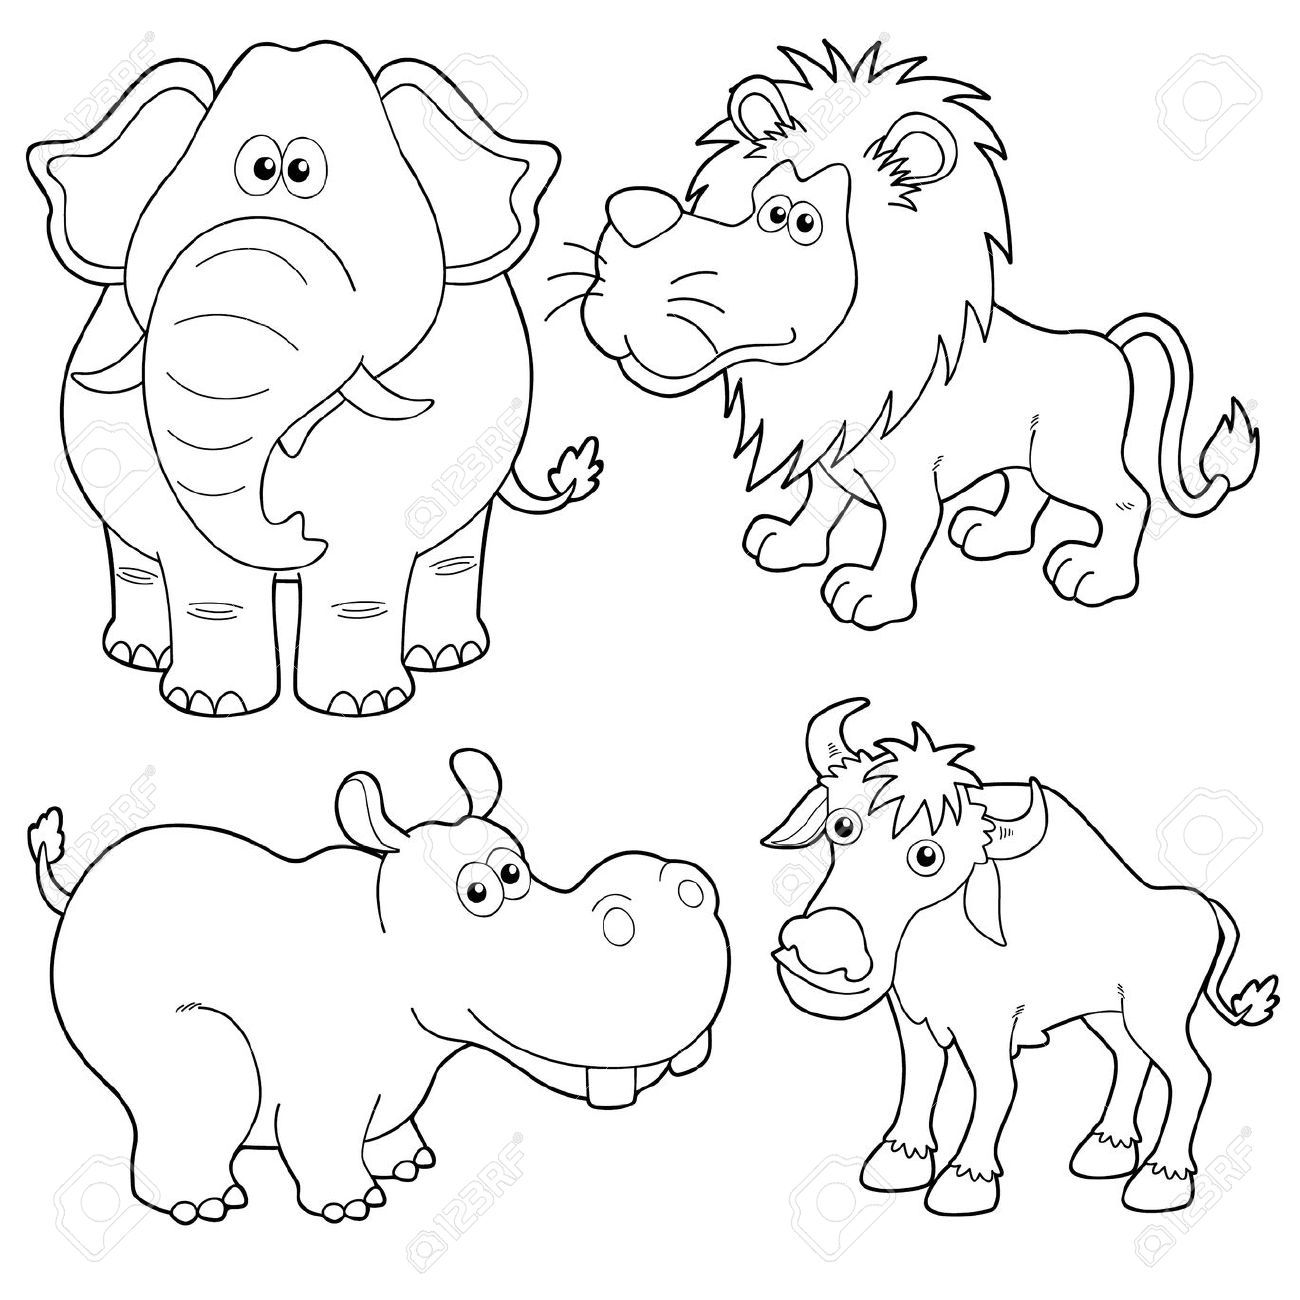 Uncategorized Wild Animal Drawing 16608665 illustration of wild animals cartoons outline stock vector art clipart and vectors